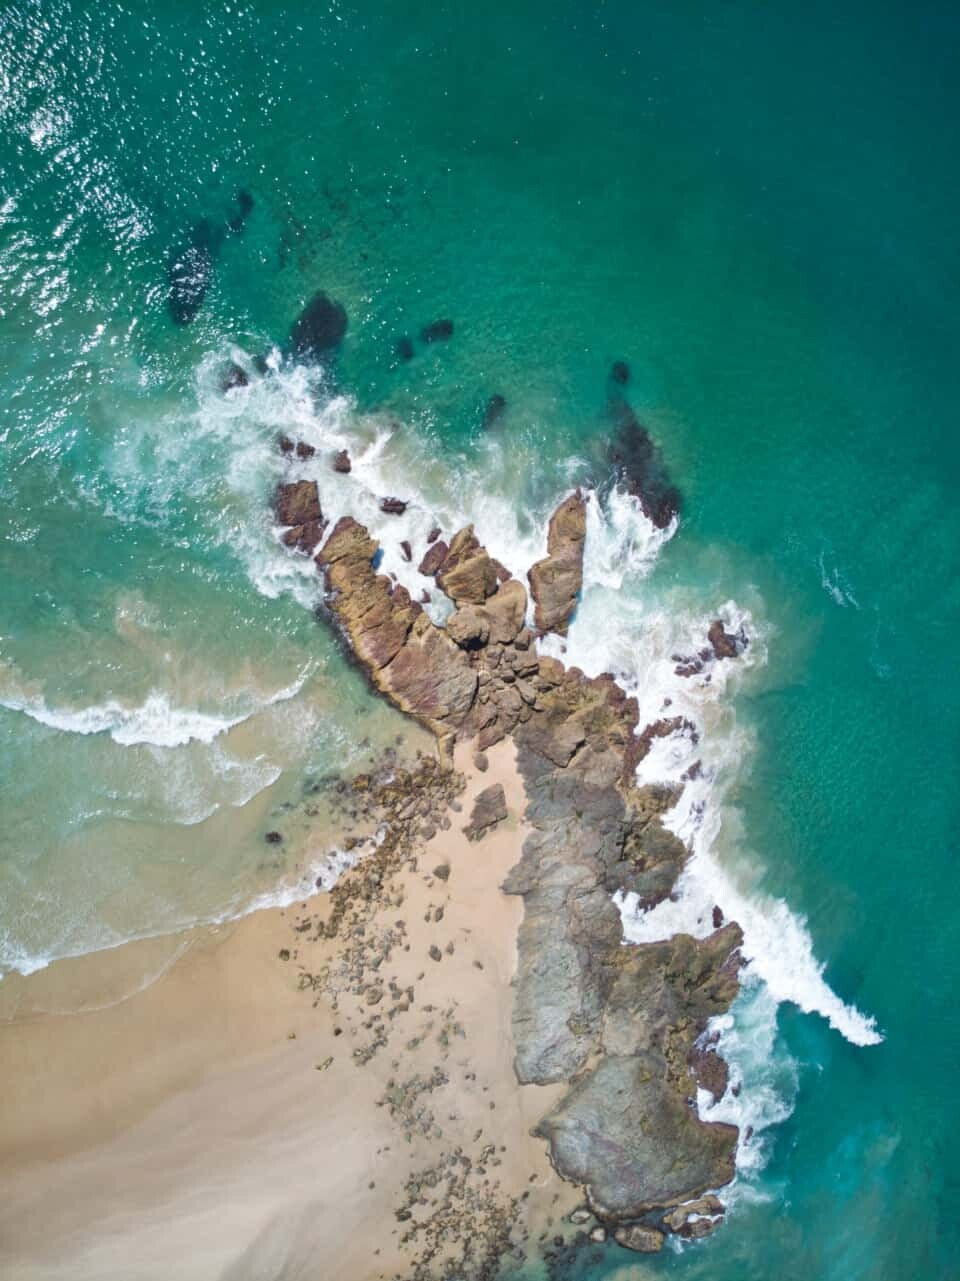 Miners Beach in Port Macquarie, New South Wales, Australia